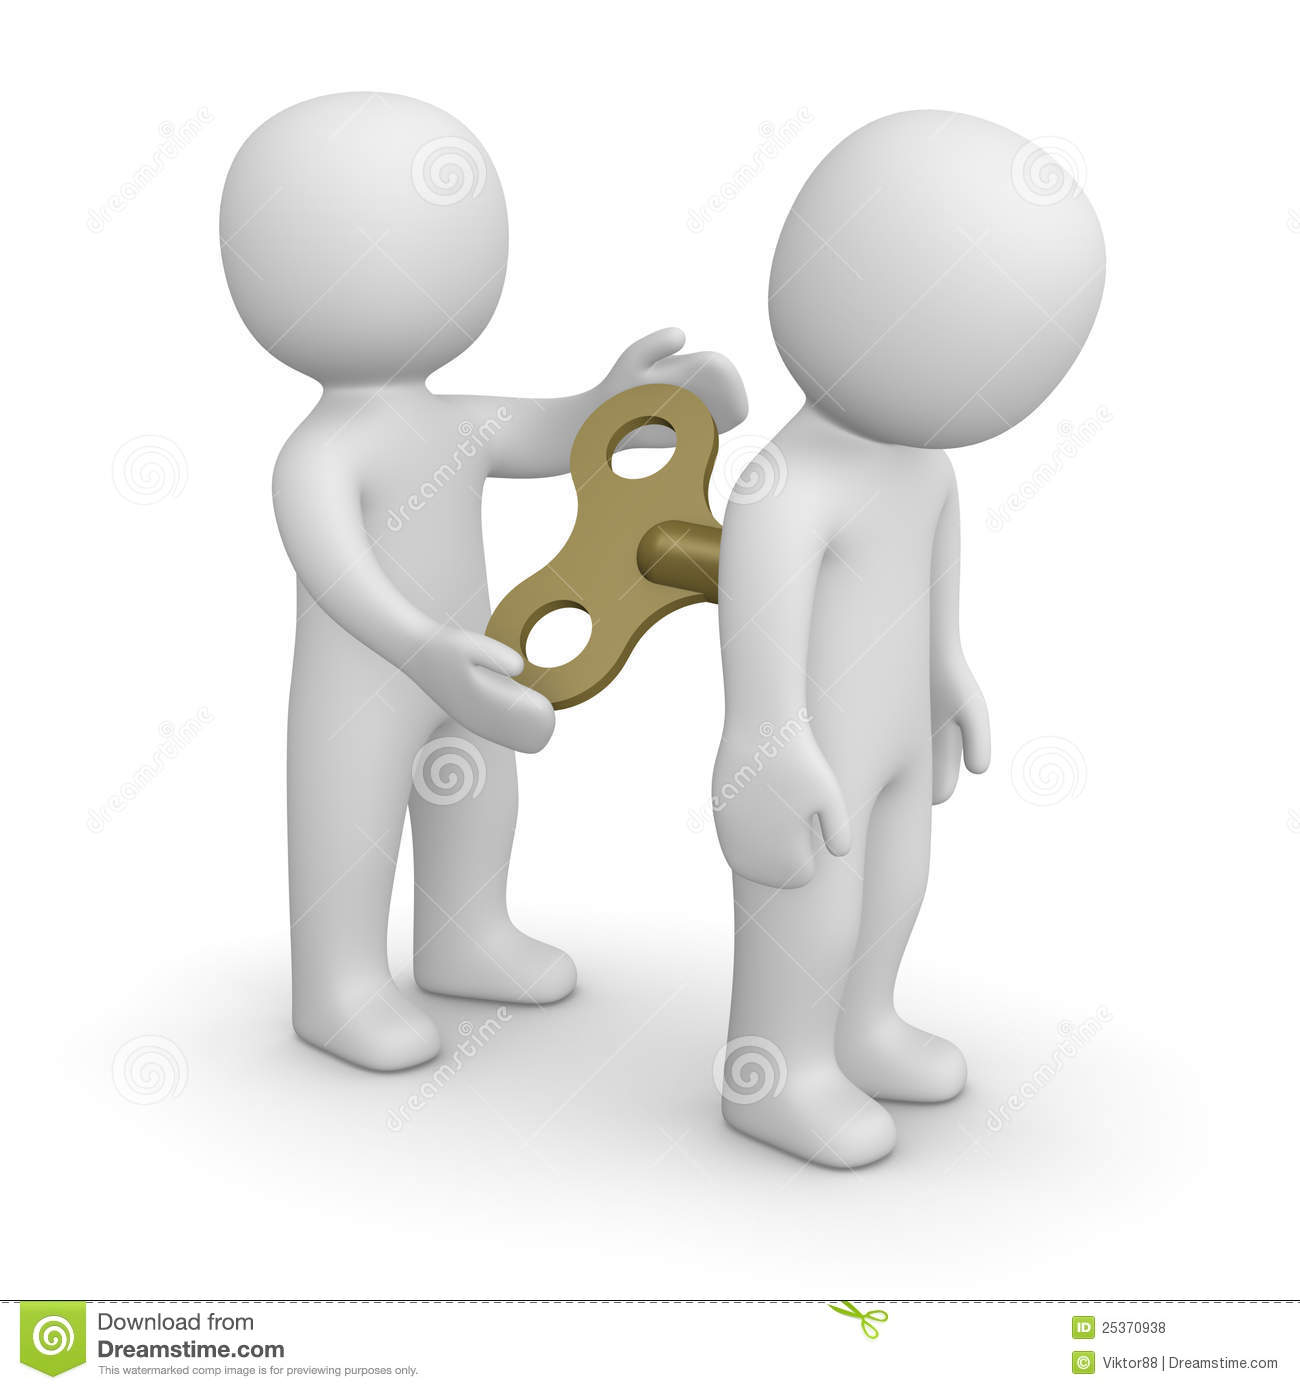 3d man encouraging his partner by key for mechanical toy.